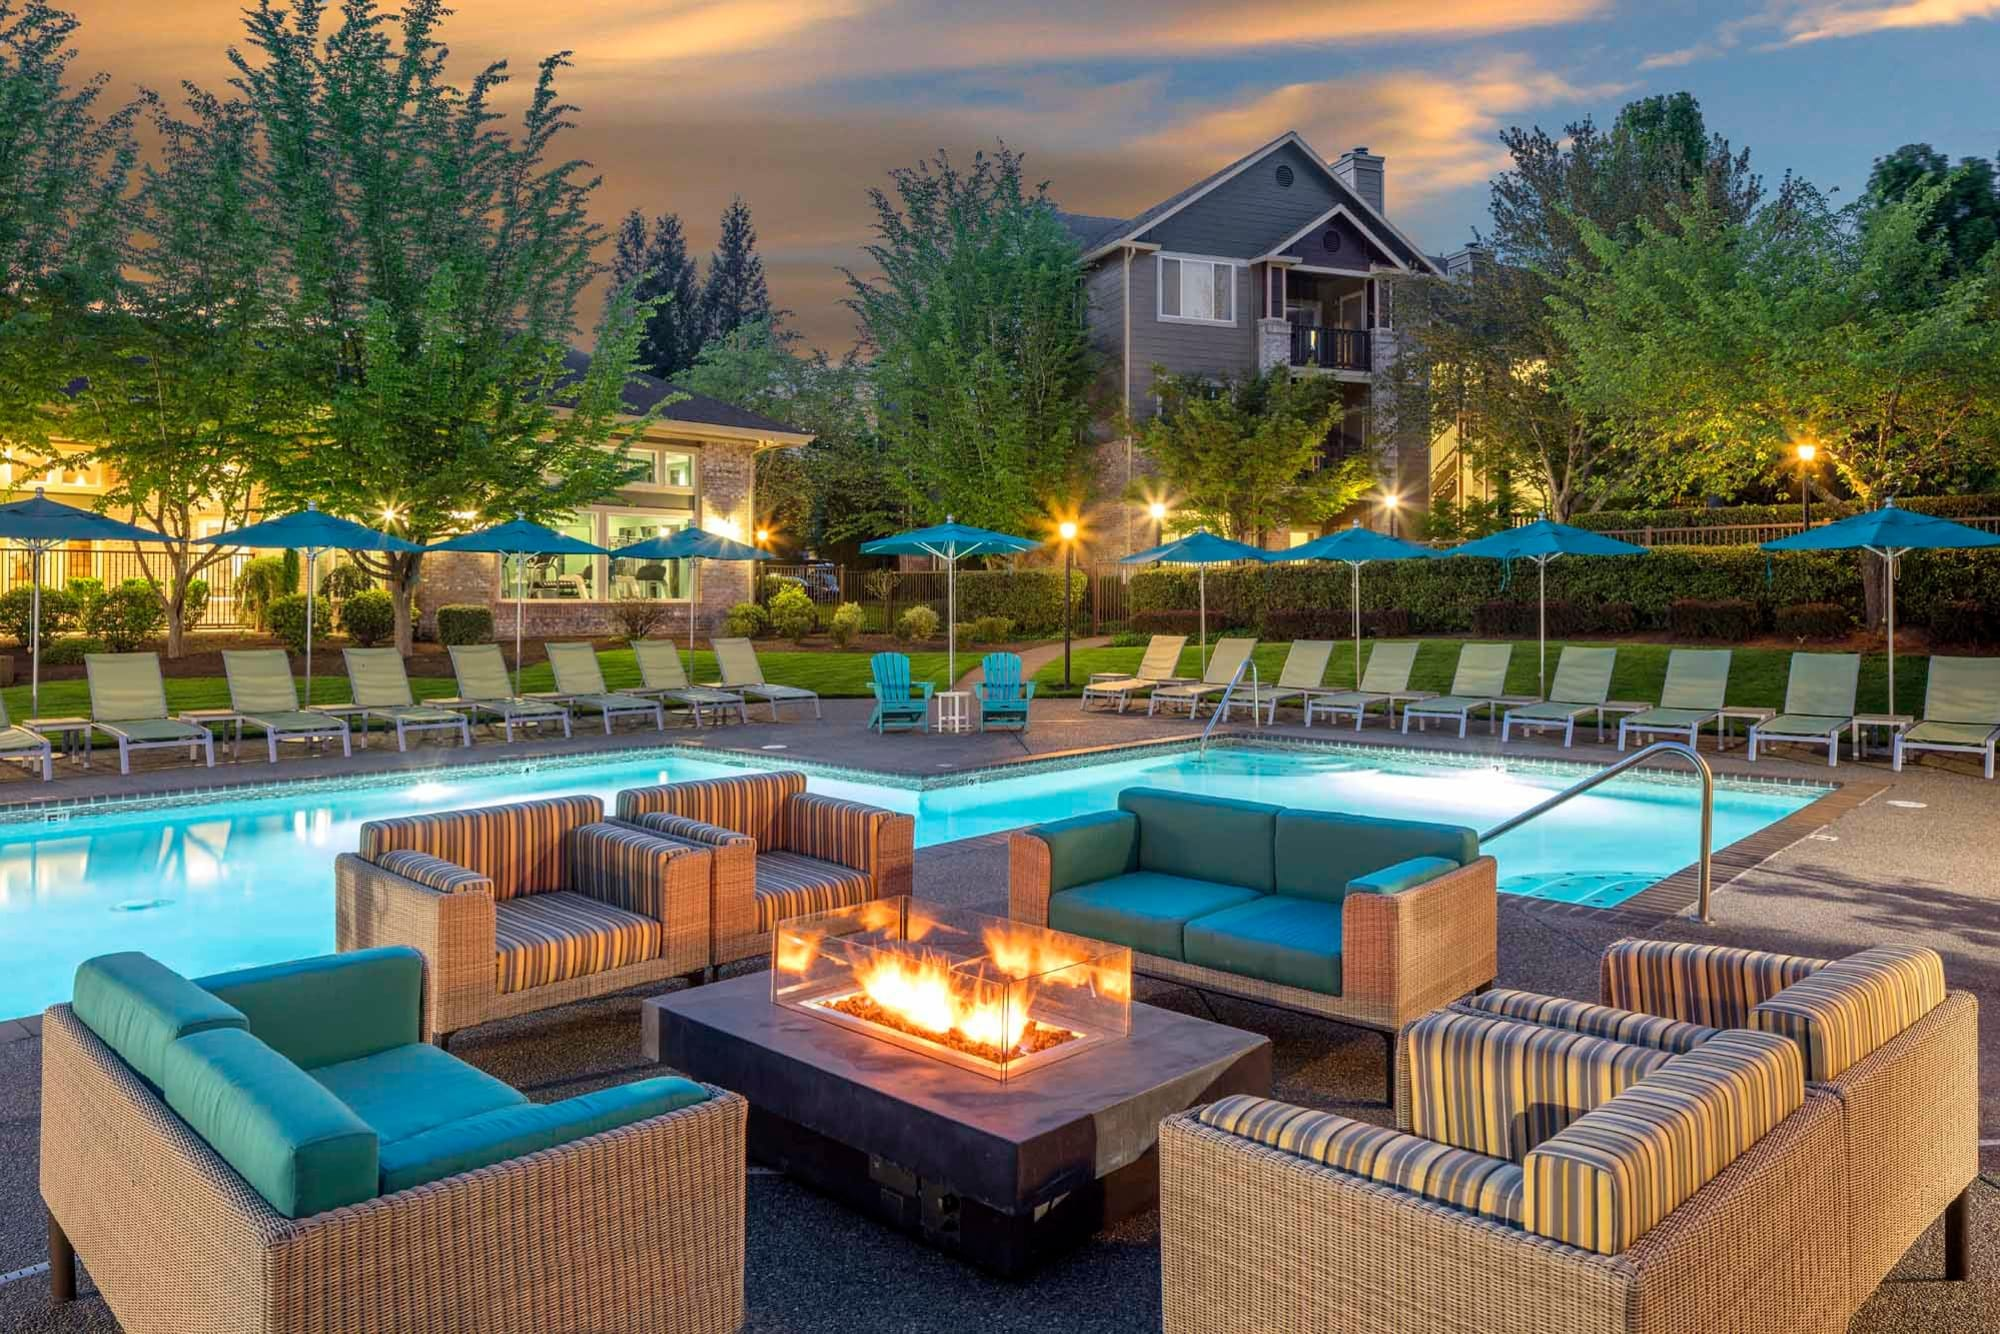 A fire pit surrounded by large chairs, poolside at The Grove at Orenco Station in Hillsboro, Oregon